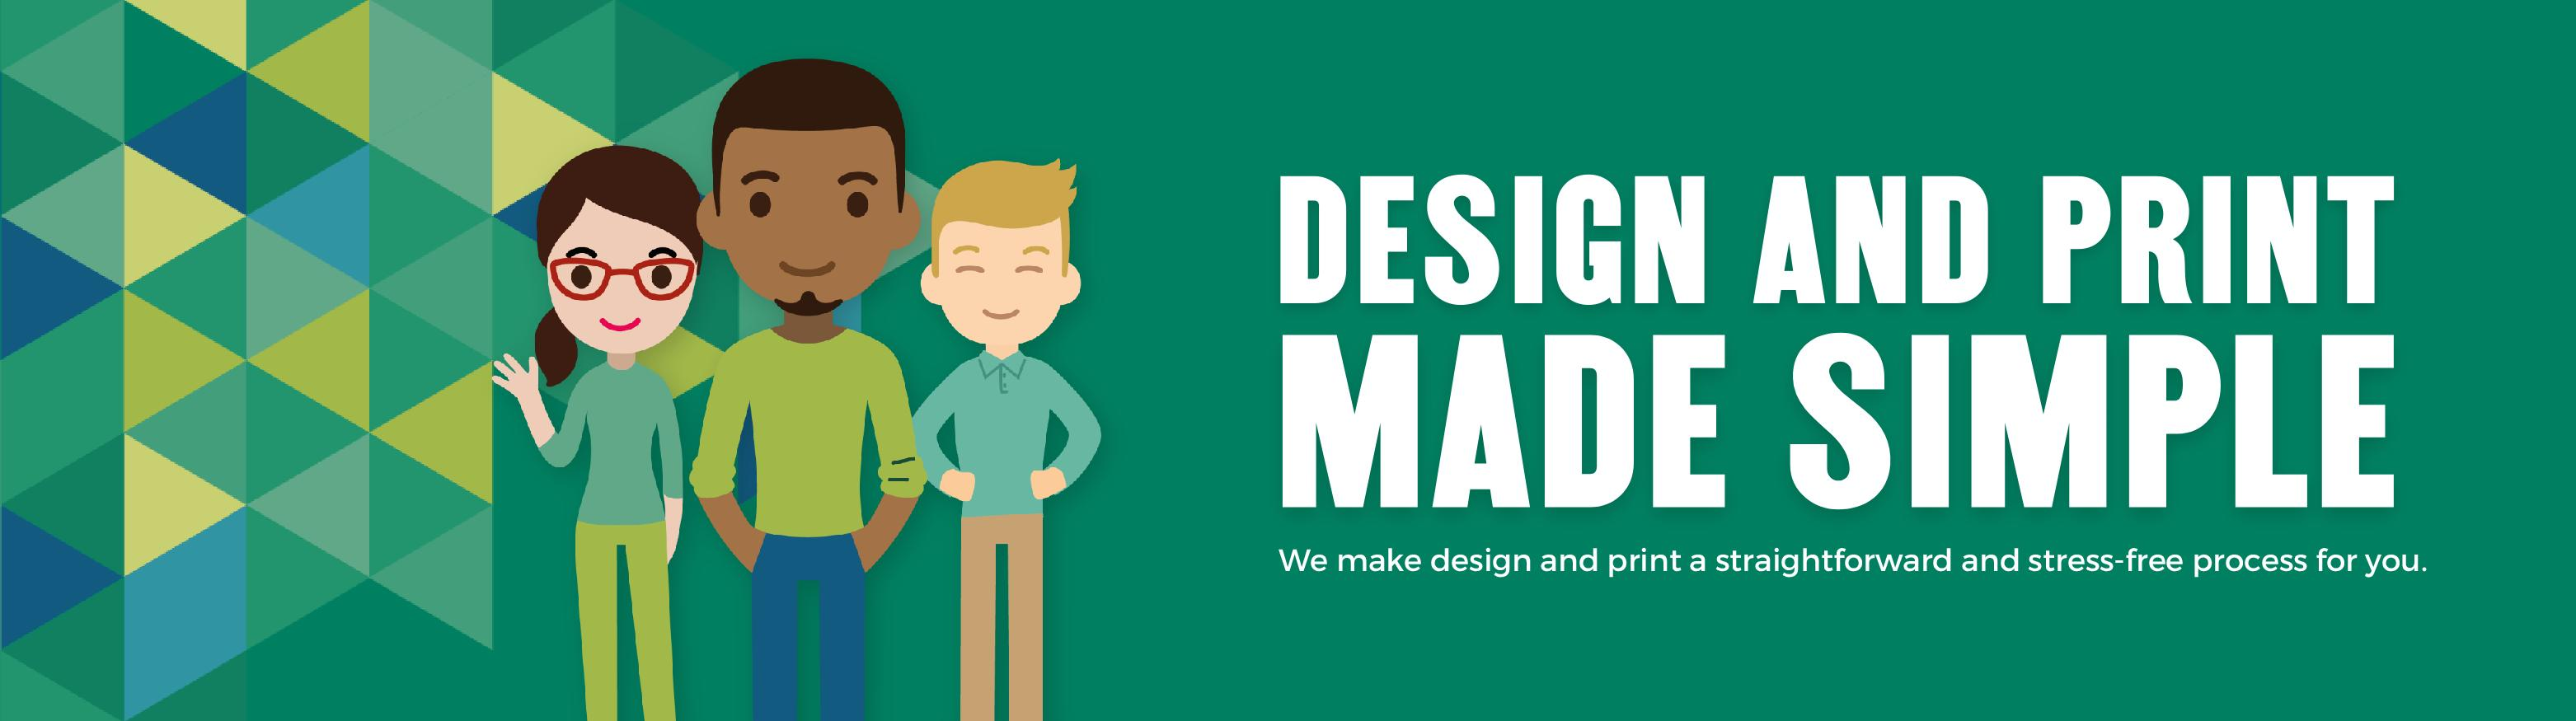 Design And Print Made Simple 2